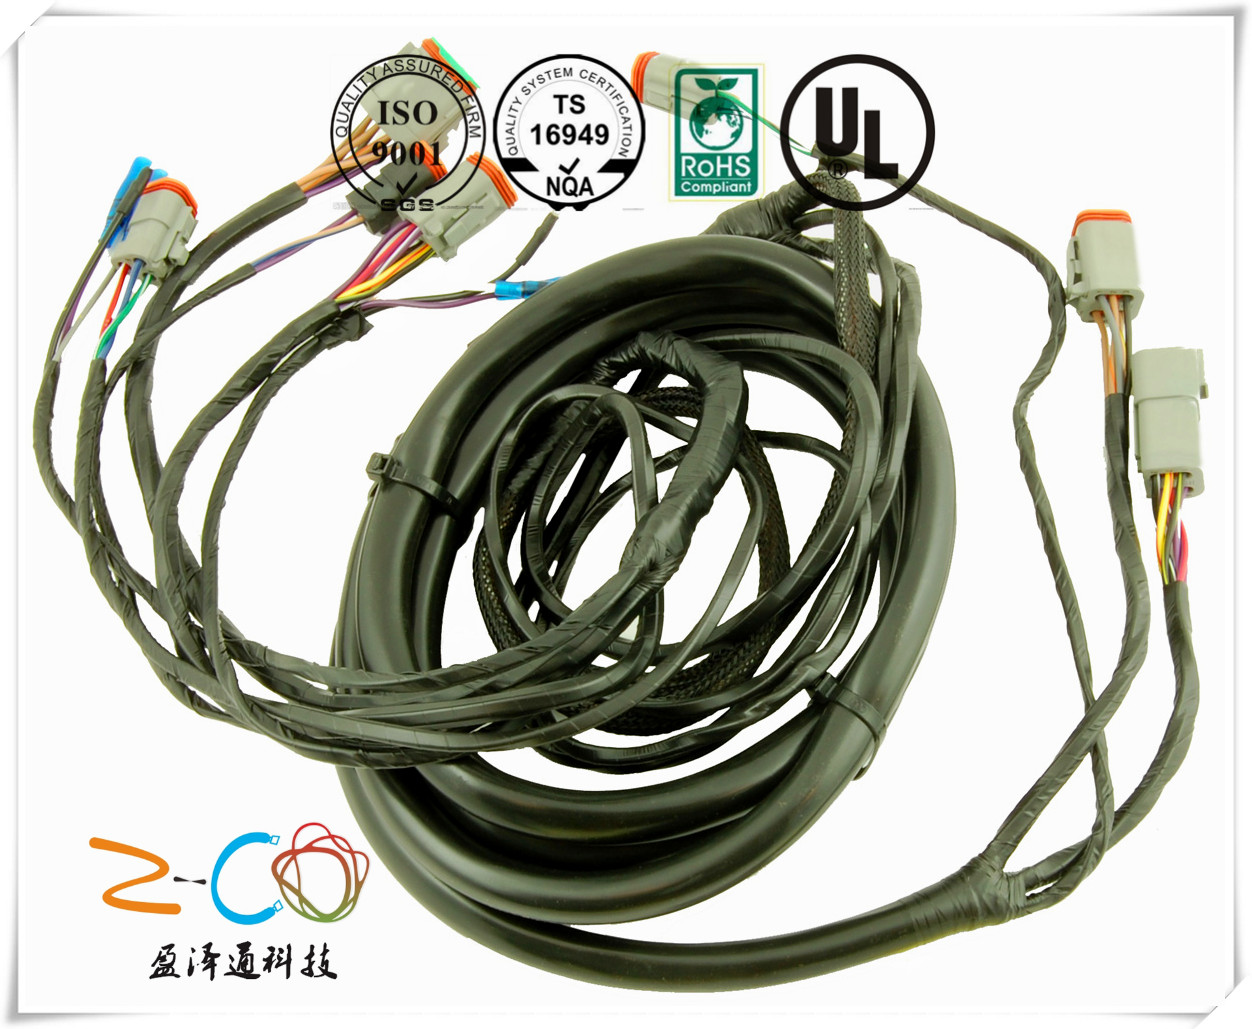 20148320617781 good quality wire harness and cable assembly manufacturer from wire harness for car at webbmarketing.co